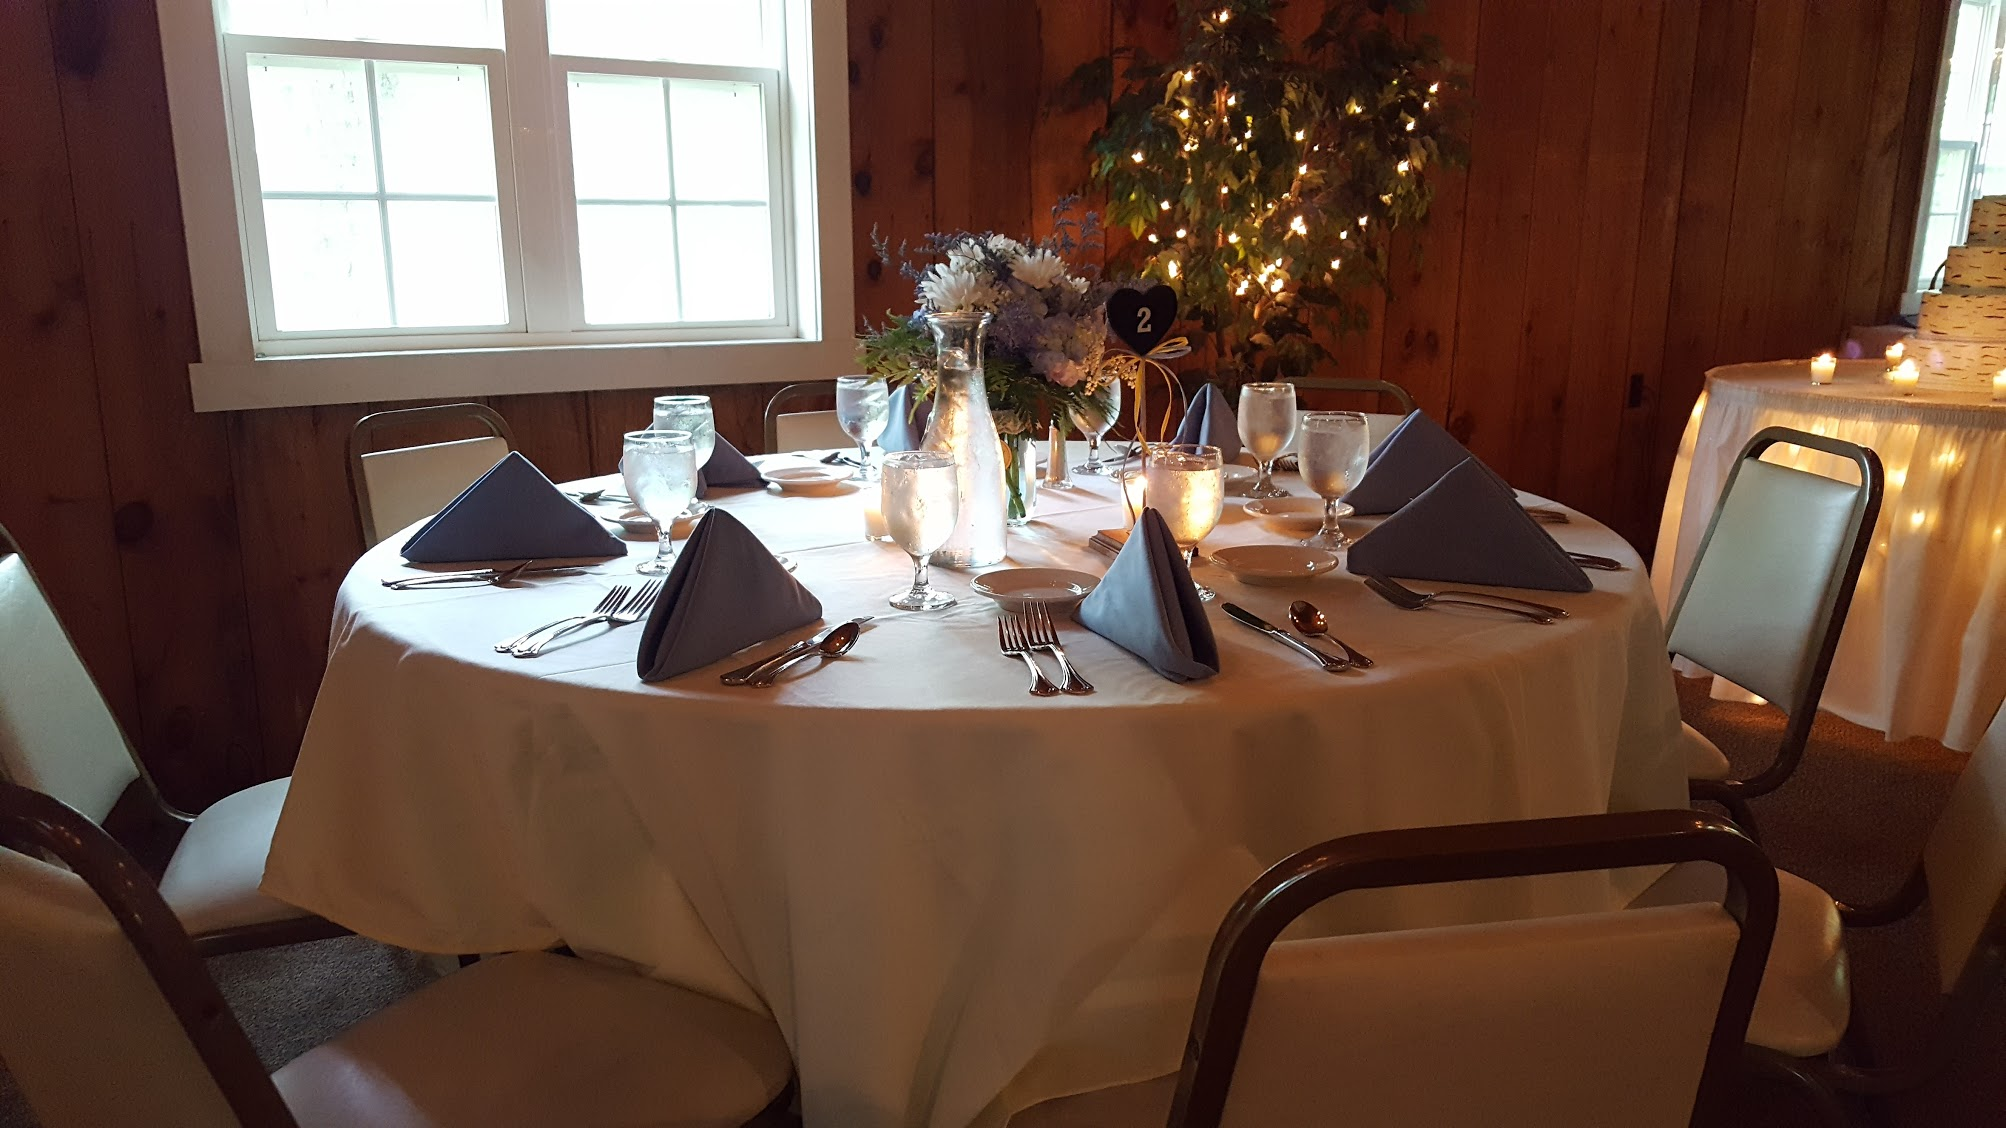 Table setting at wedding reception